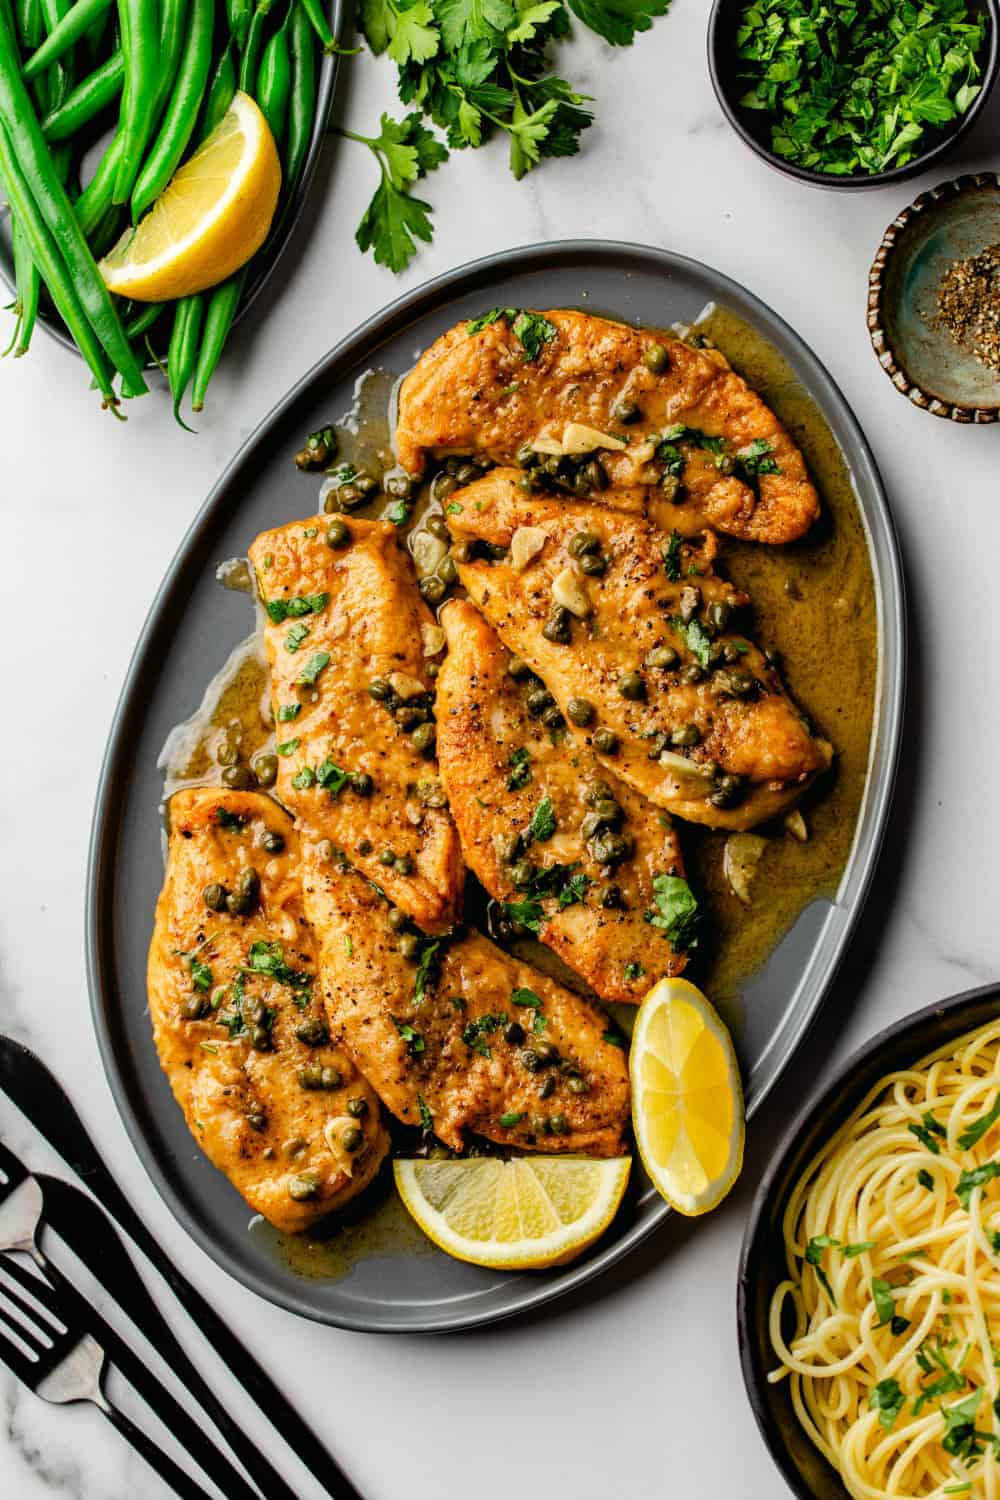 The bright flavor of lemon juice and the brininess of capers come together in the best way in this Chicken Piccata recipe. It is easy to make for a weeknight dinner but special enough to serve to company!